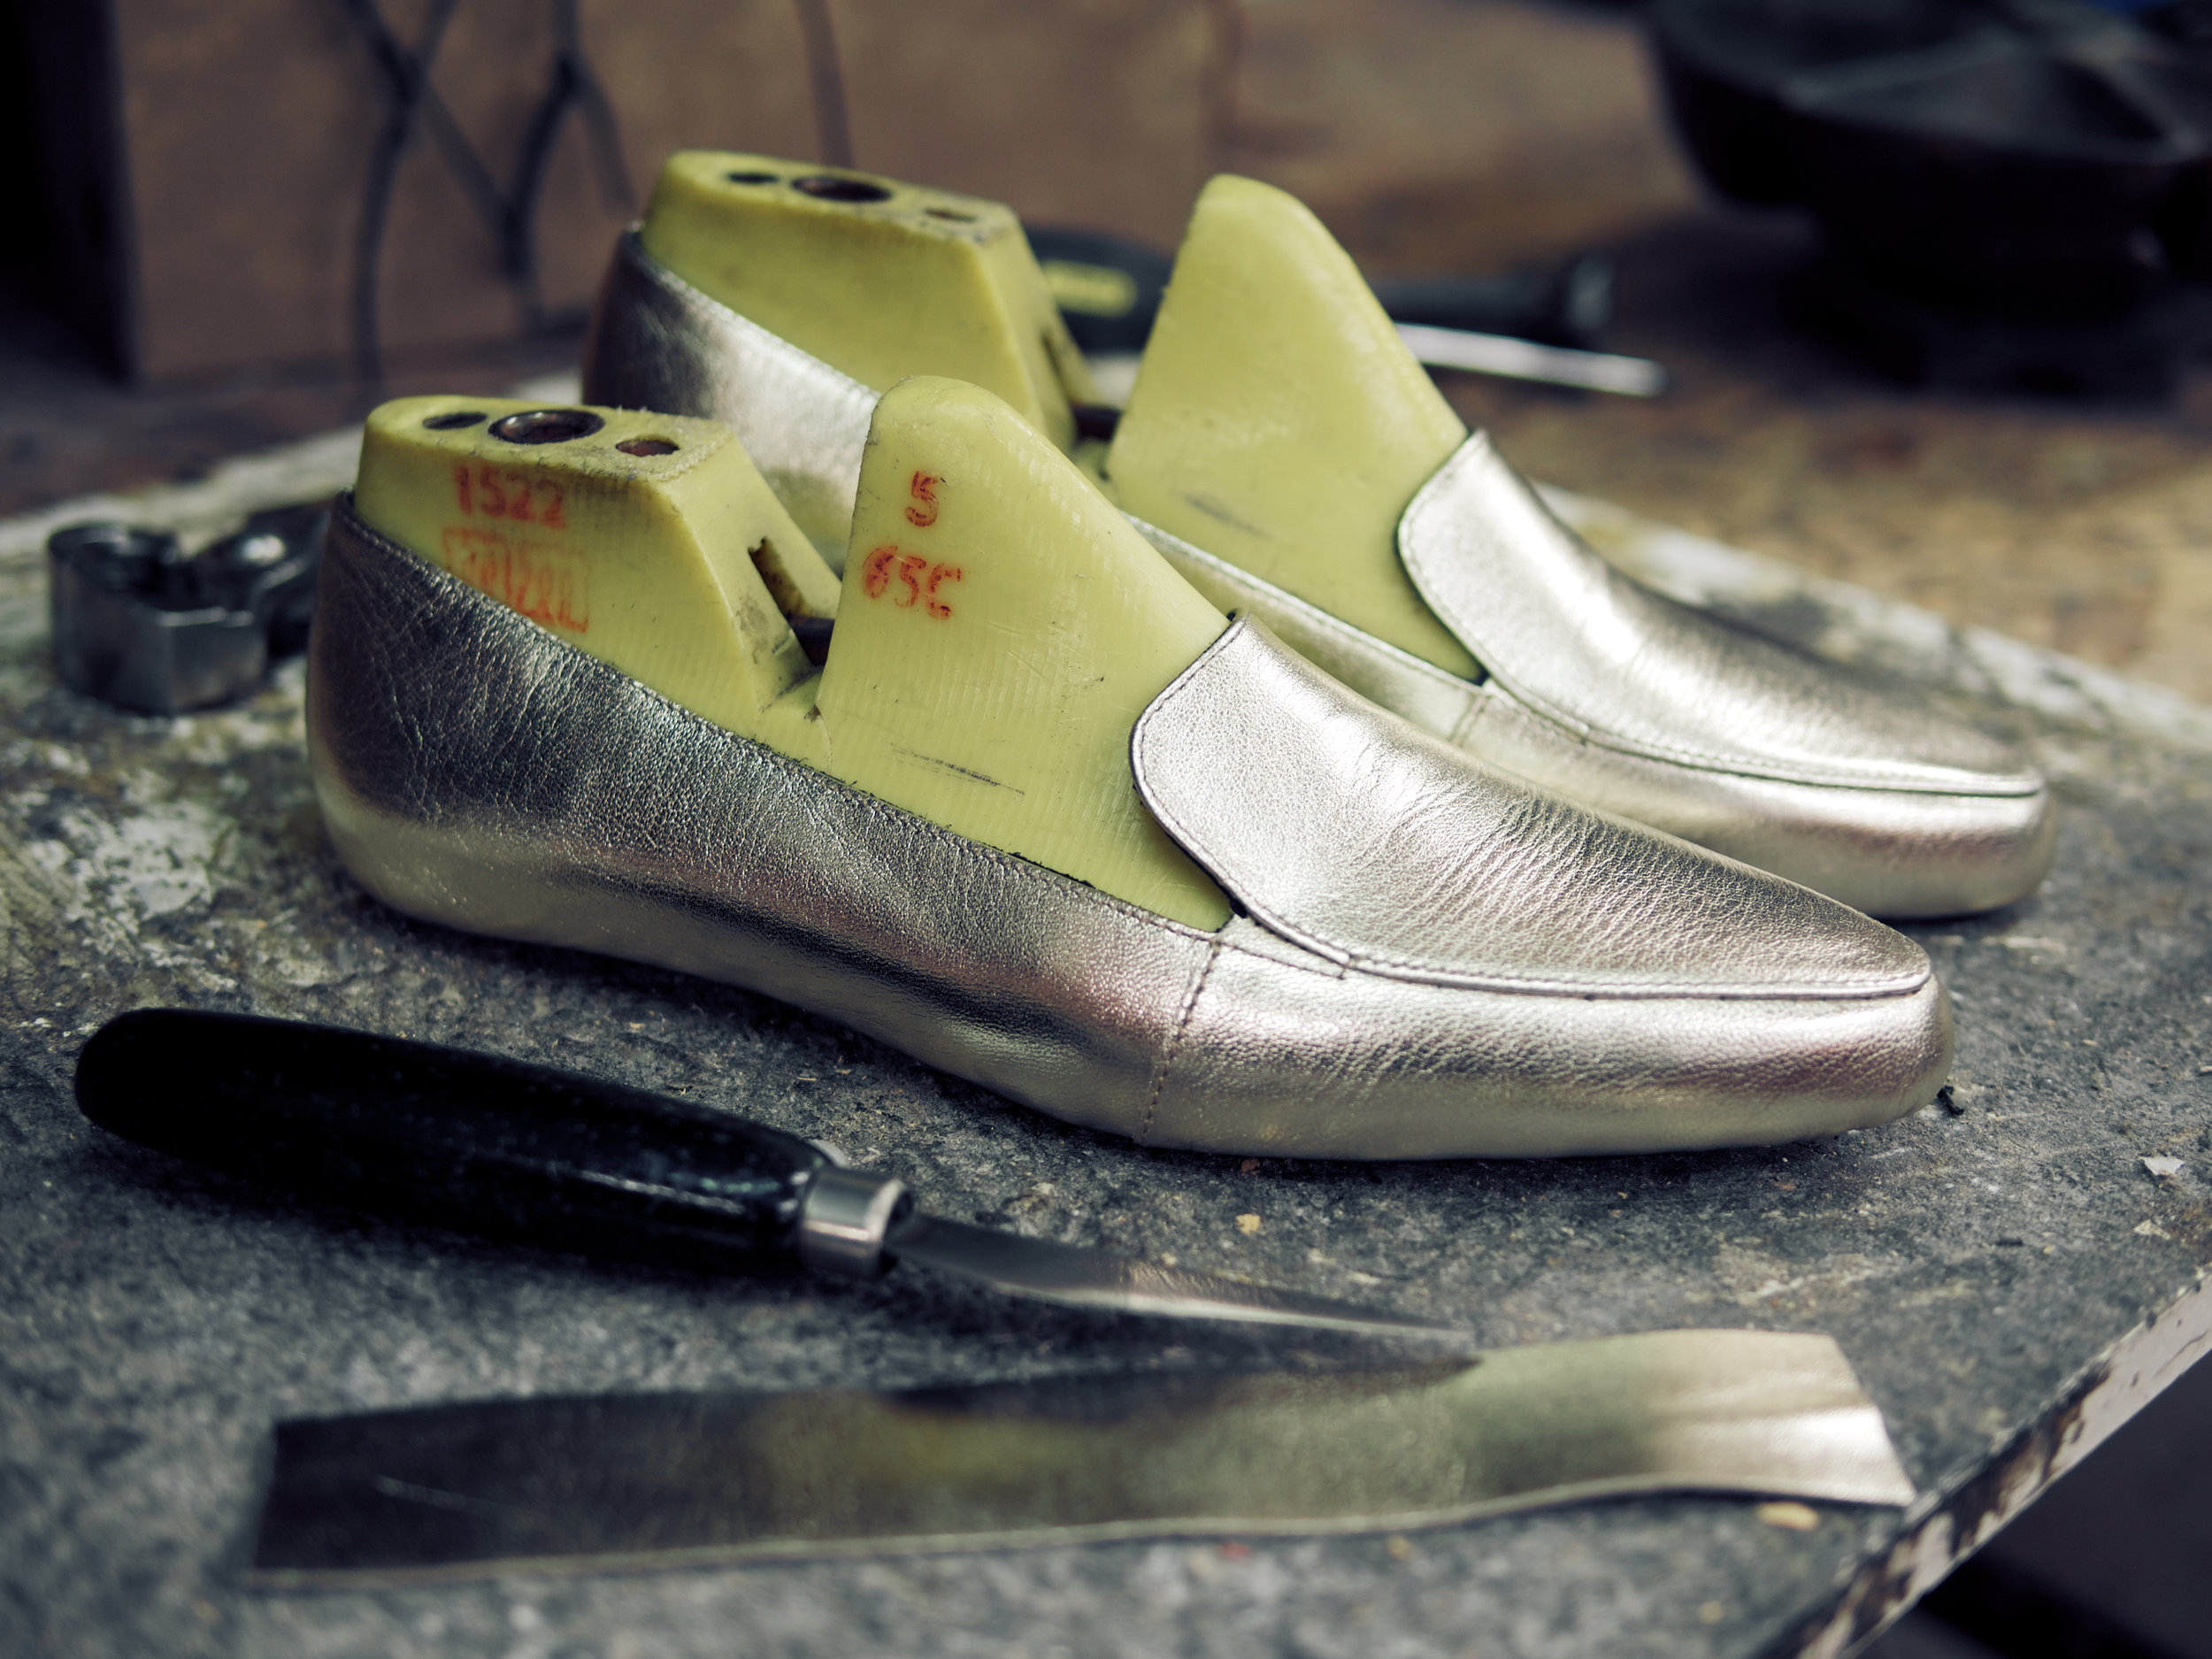 Tutty's Handmade Shoes